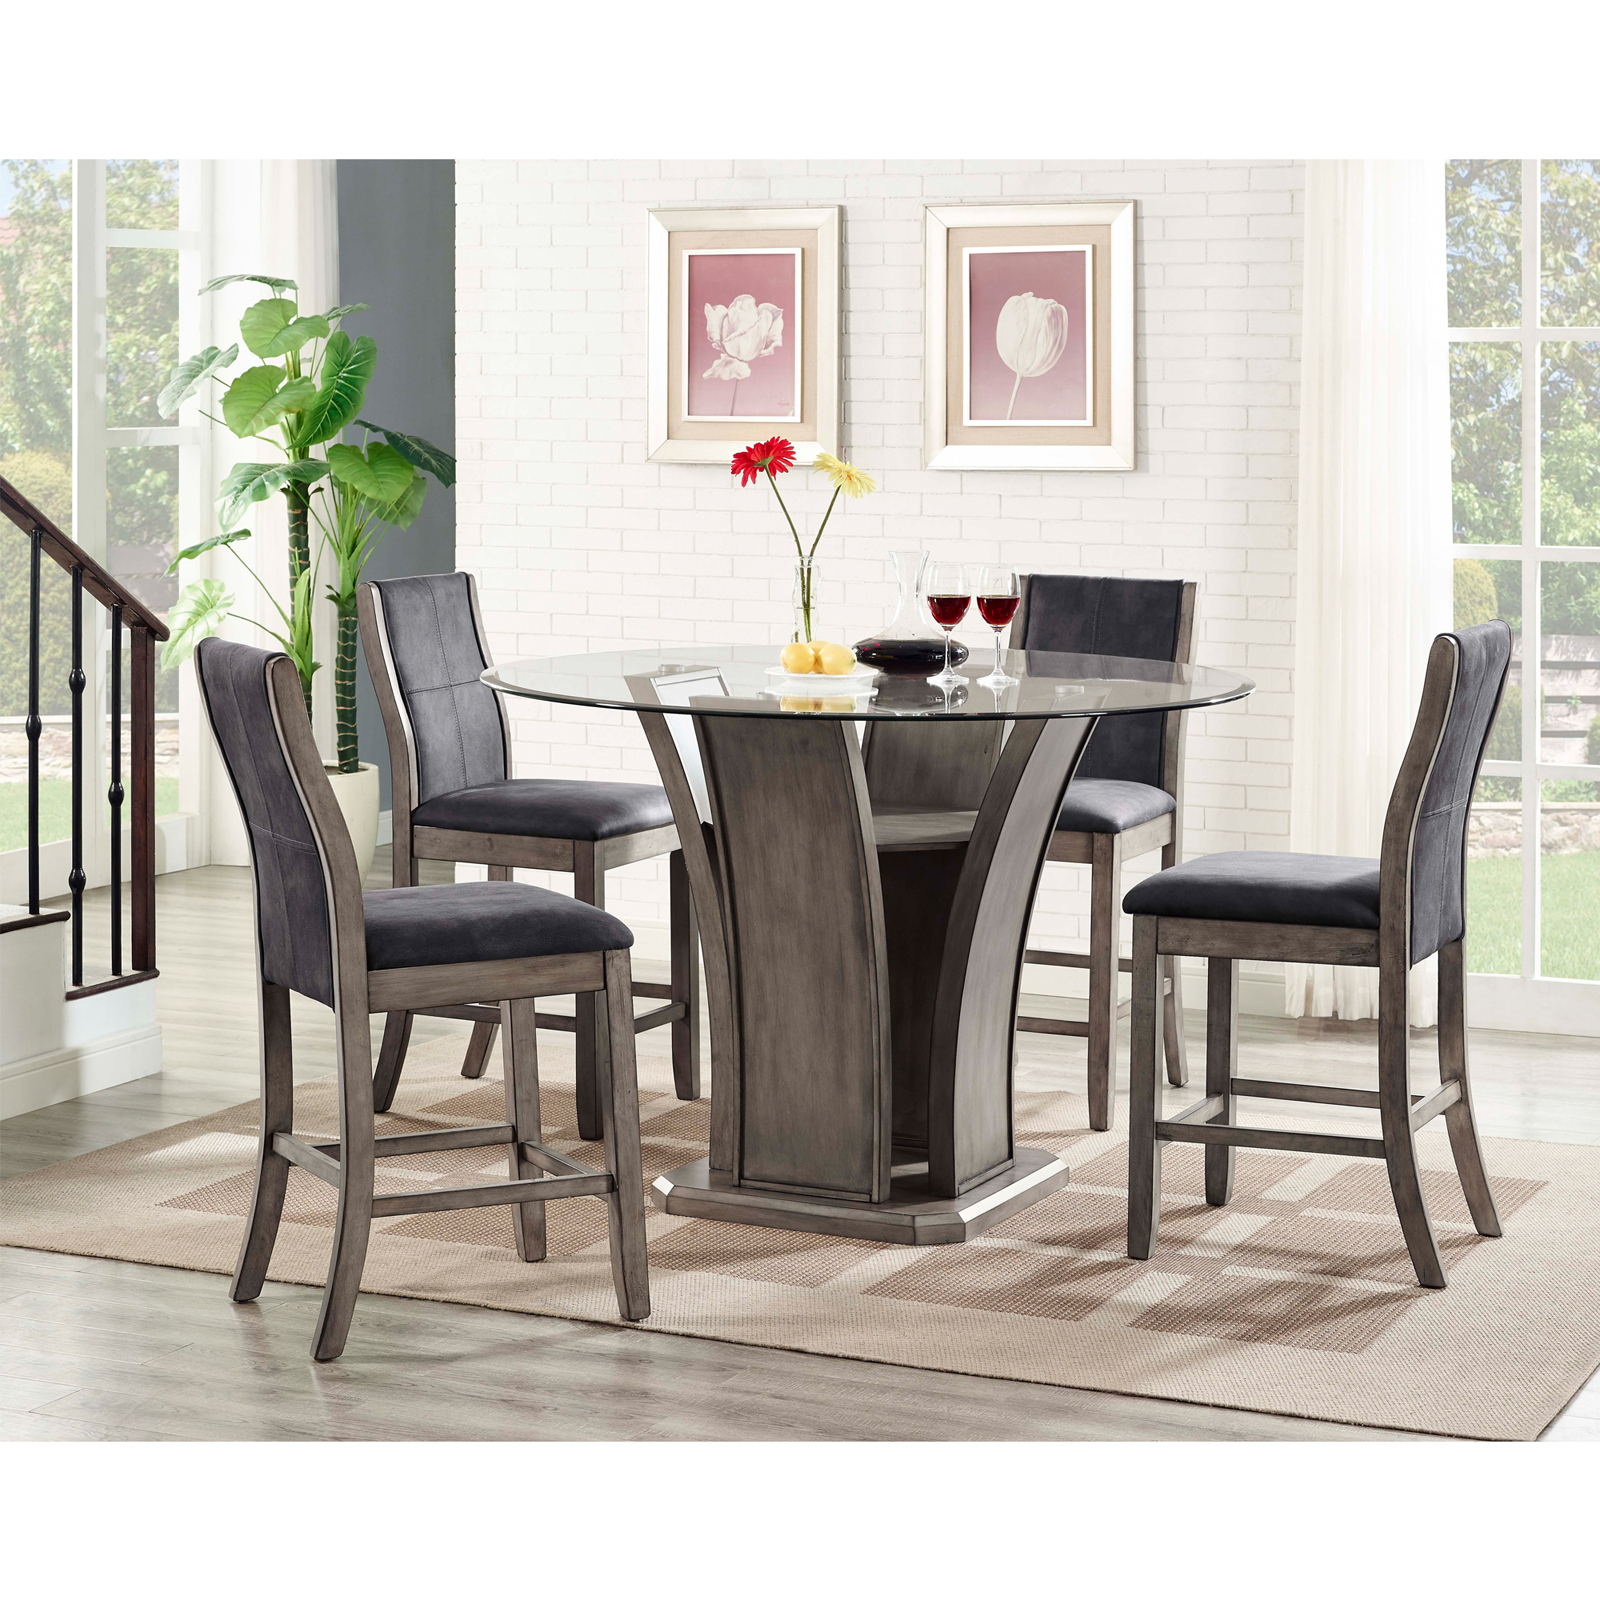 Picket House Furnishings Dylan 5 Piece Counter Height Dining Table Set